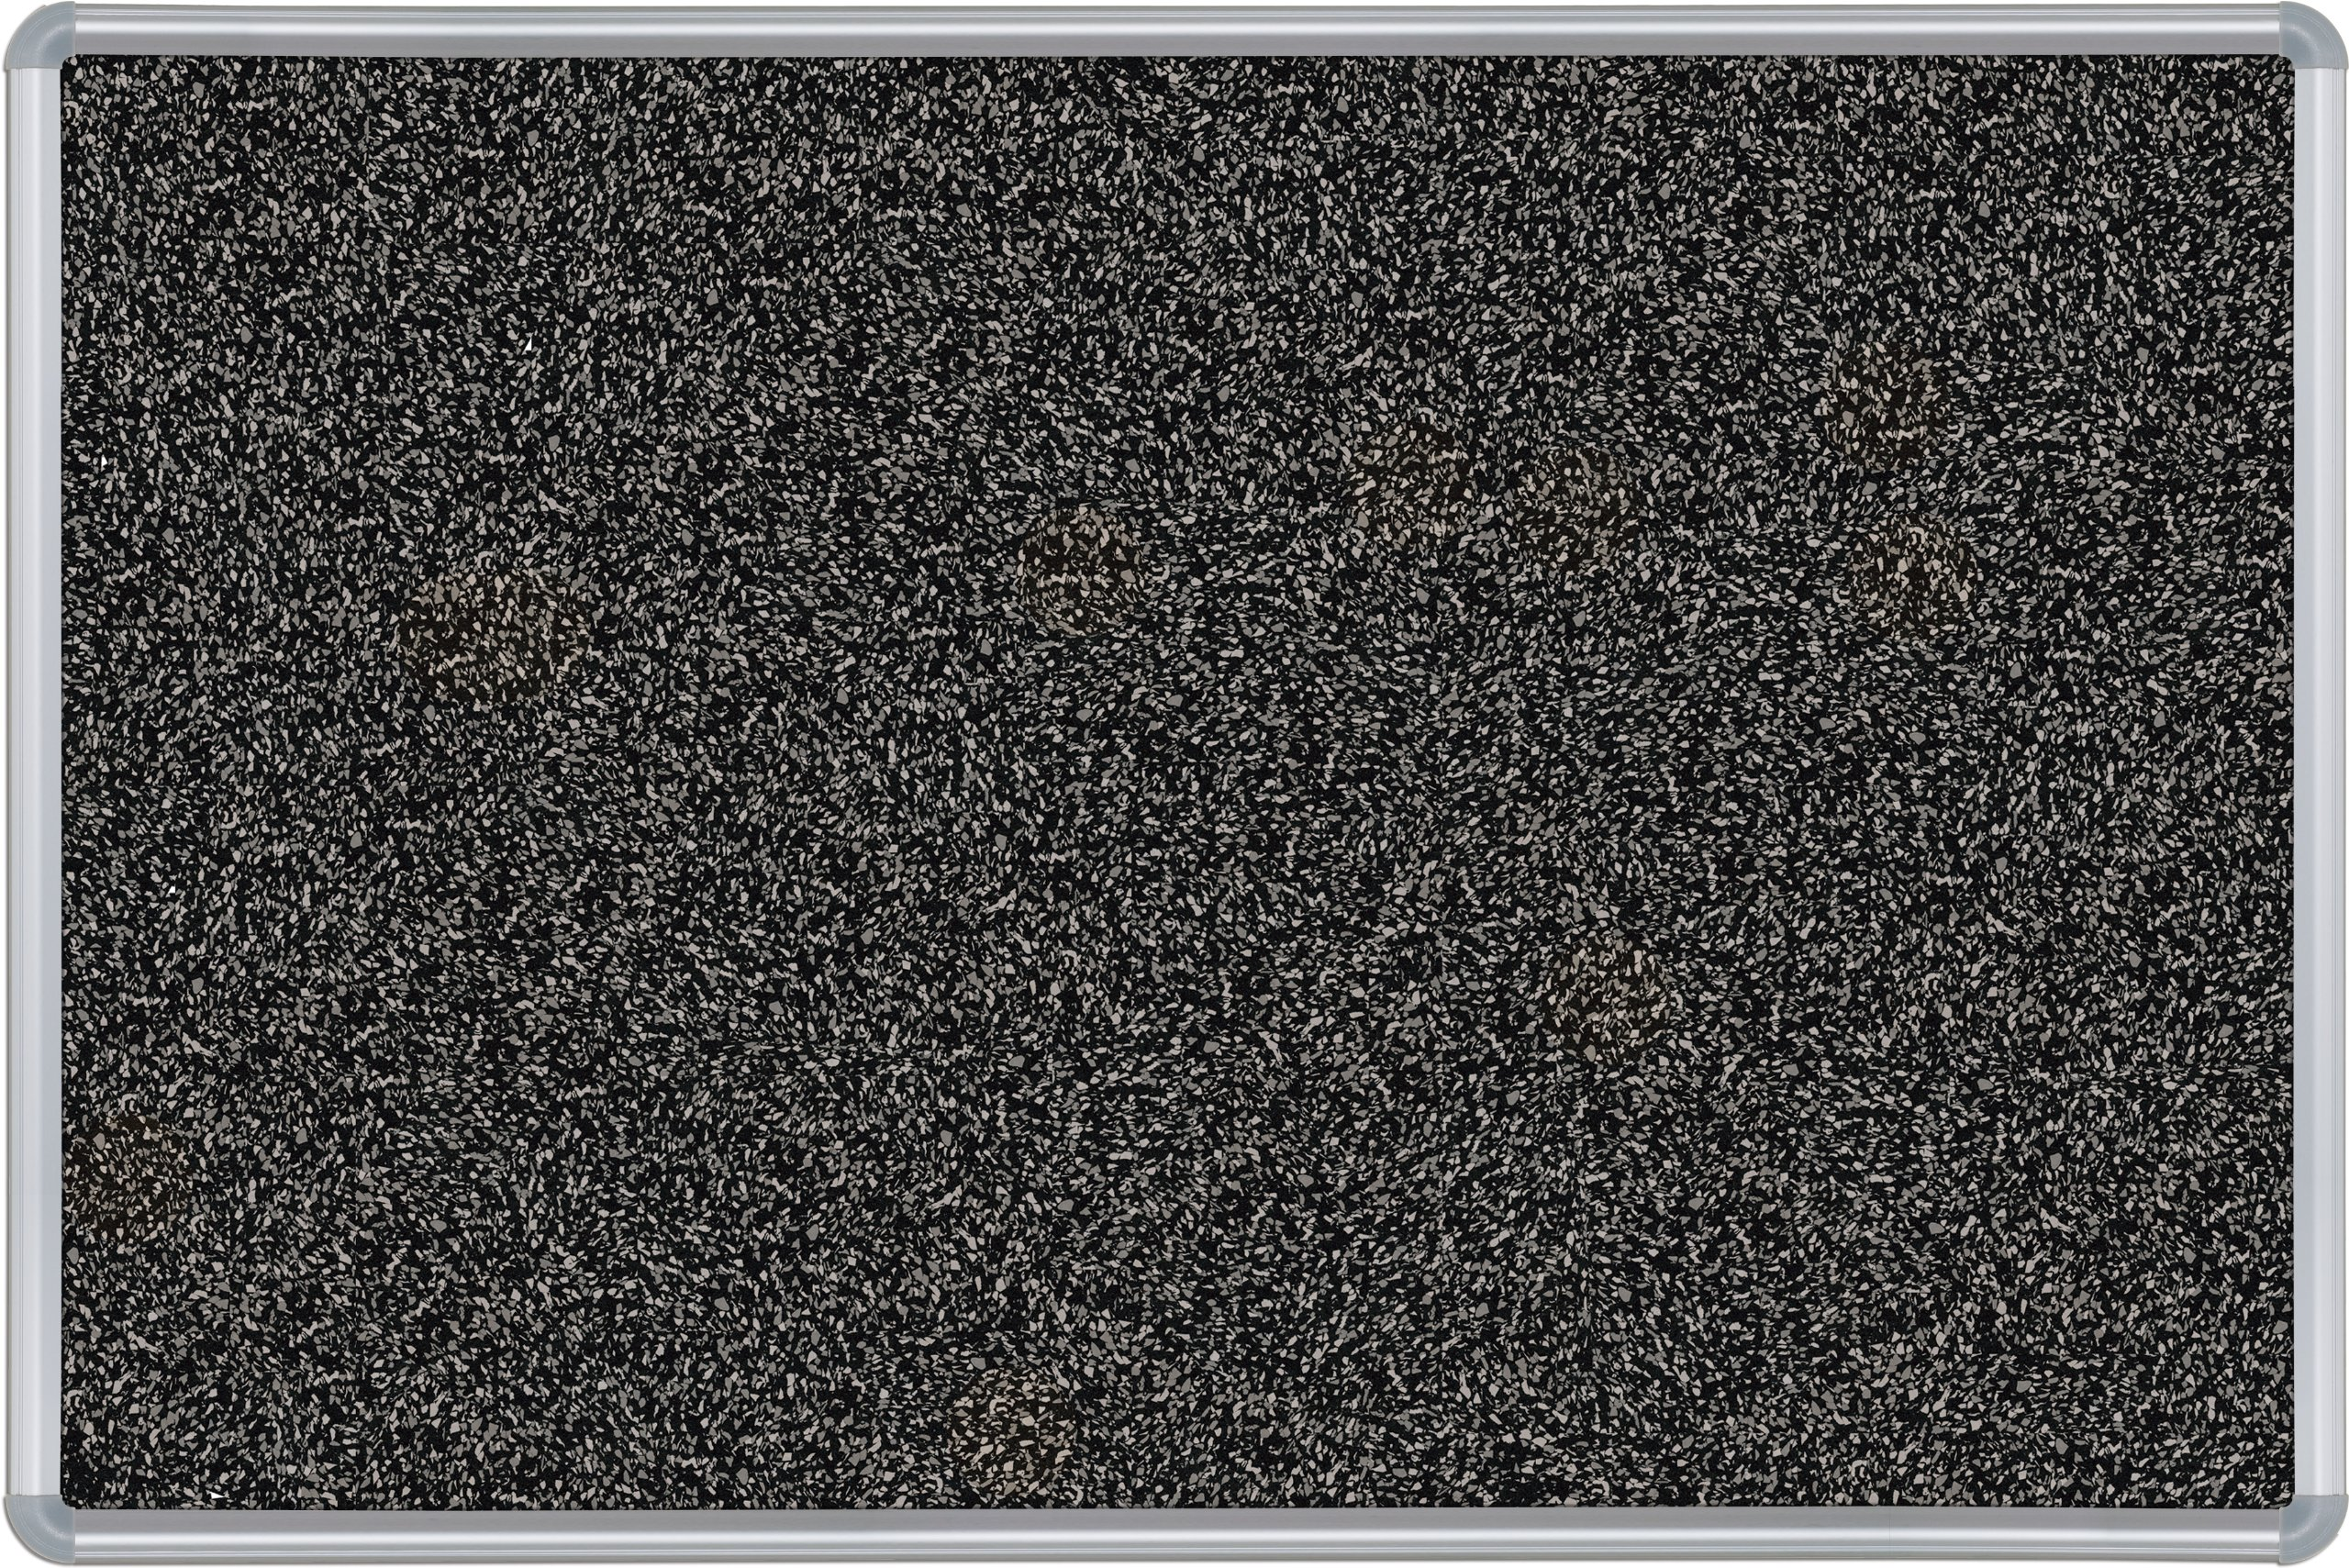 Best-Rite Presidential Trim Rubber-Tak Tackboard, Silver Trim, 33 3/4 x 48 Inches, Black (321PC-96)